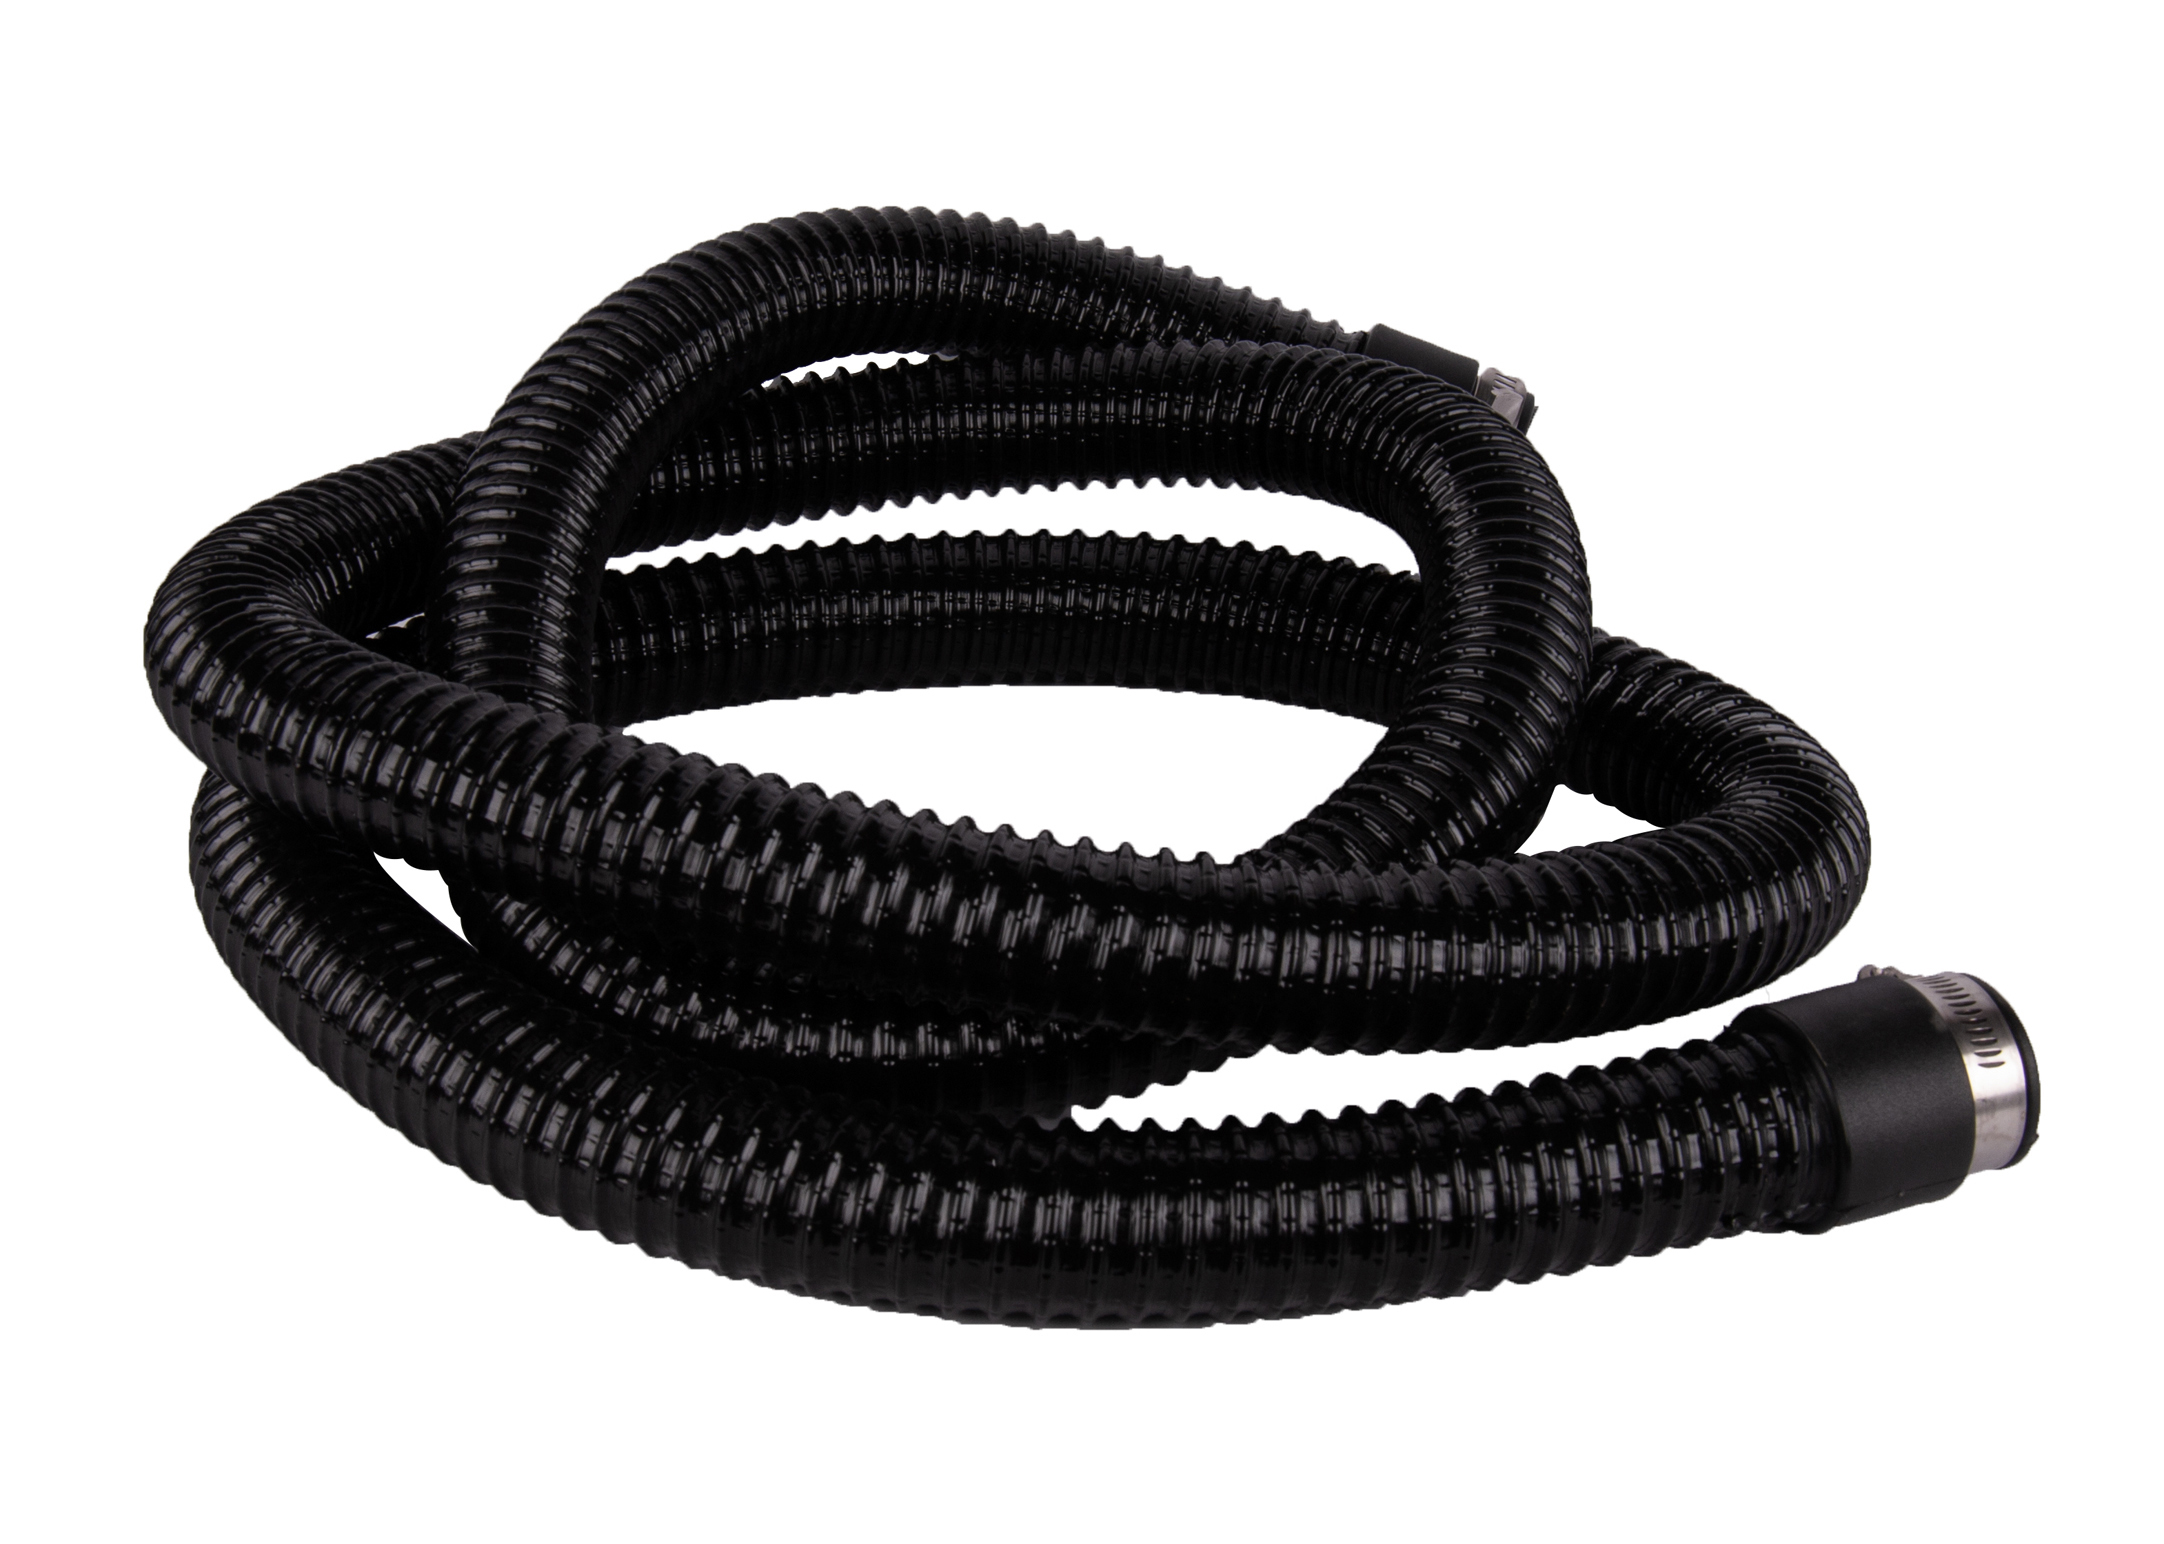 K9-II Replacement Blower Hose 3M